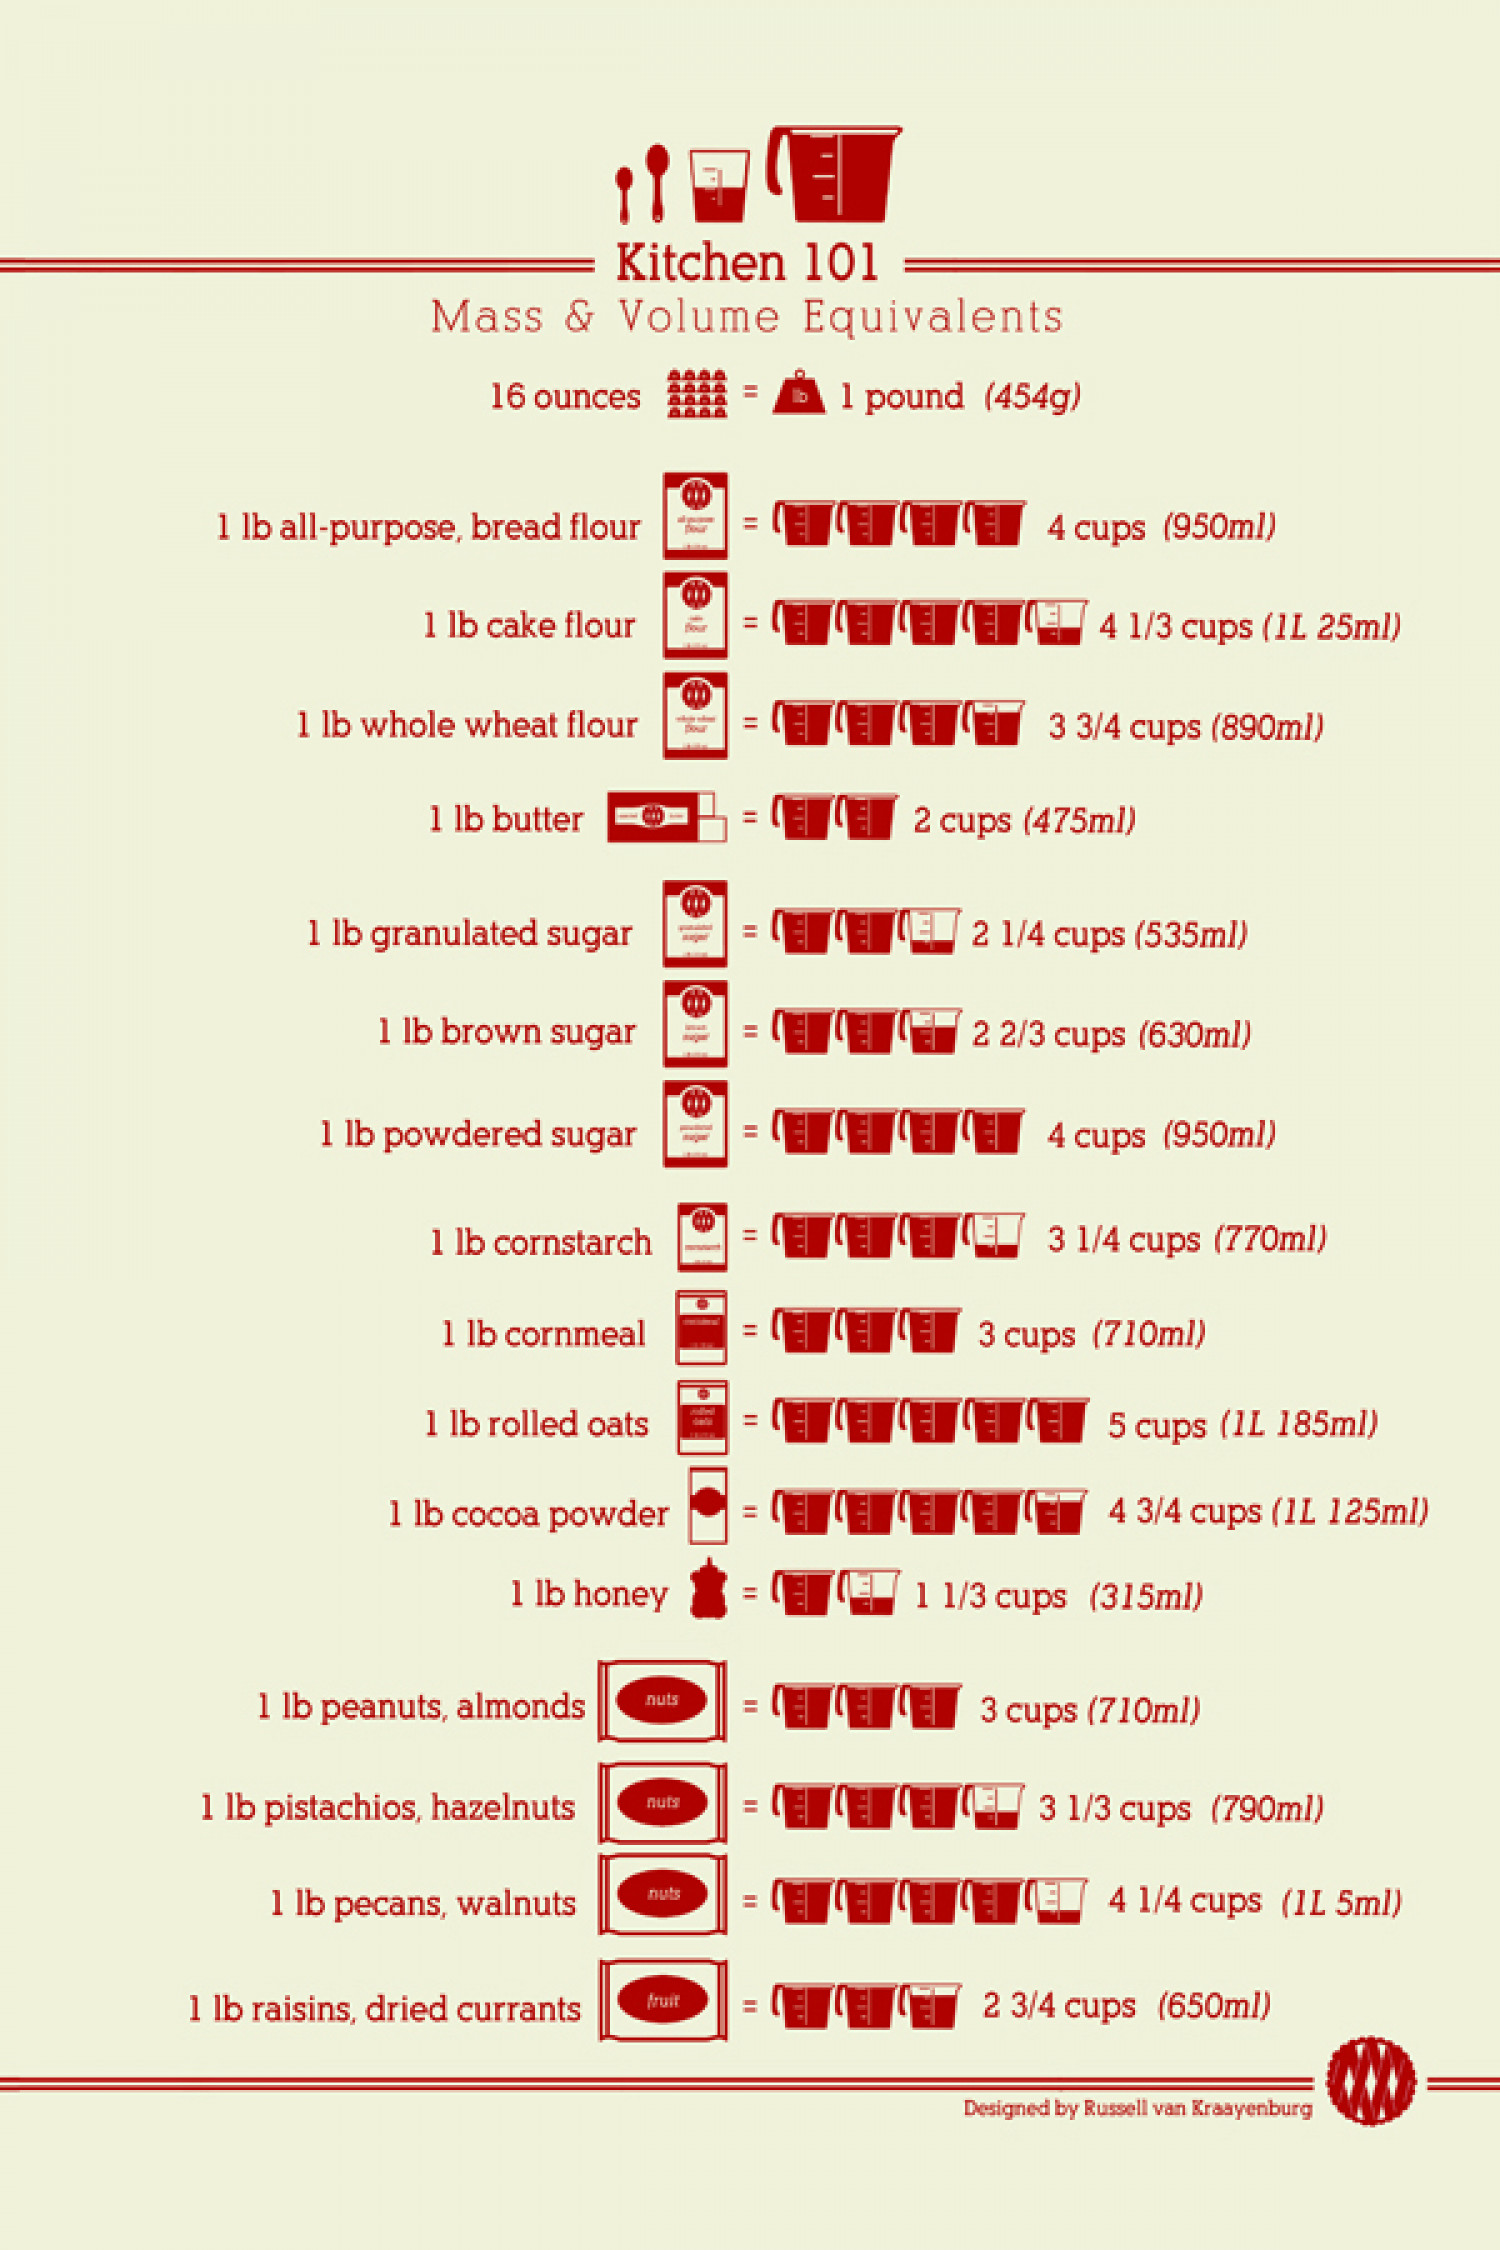 Kitchen 101 Mass & Volume Equivalents Infographic